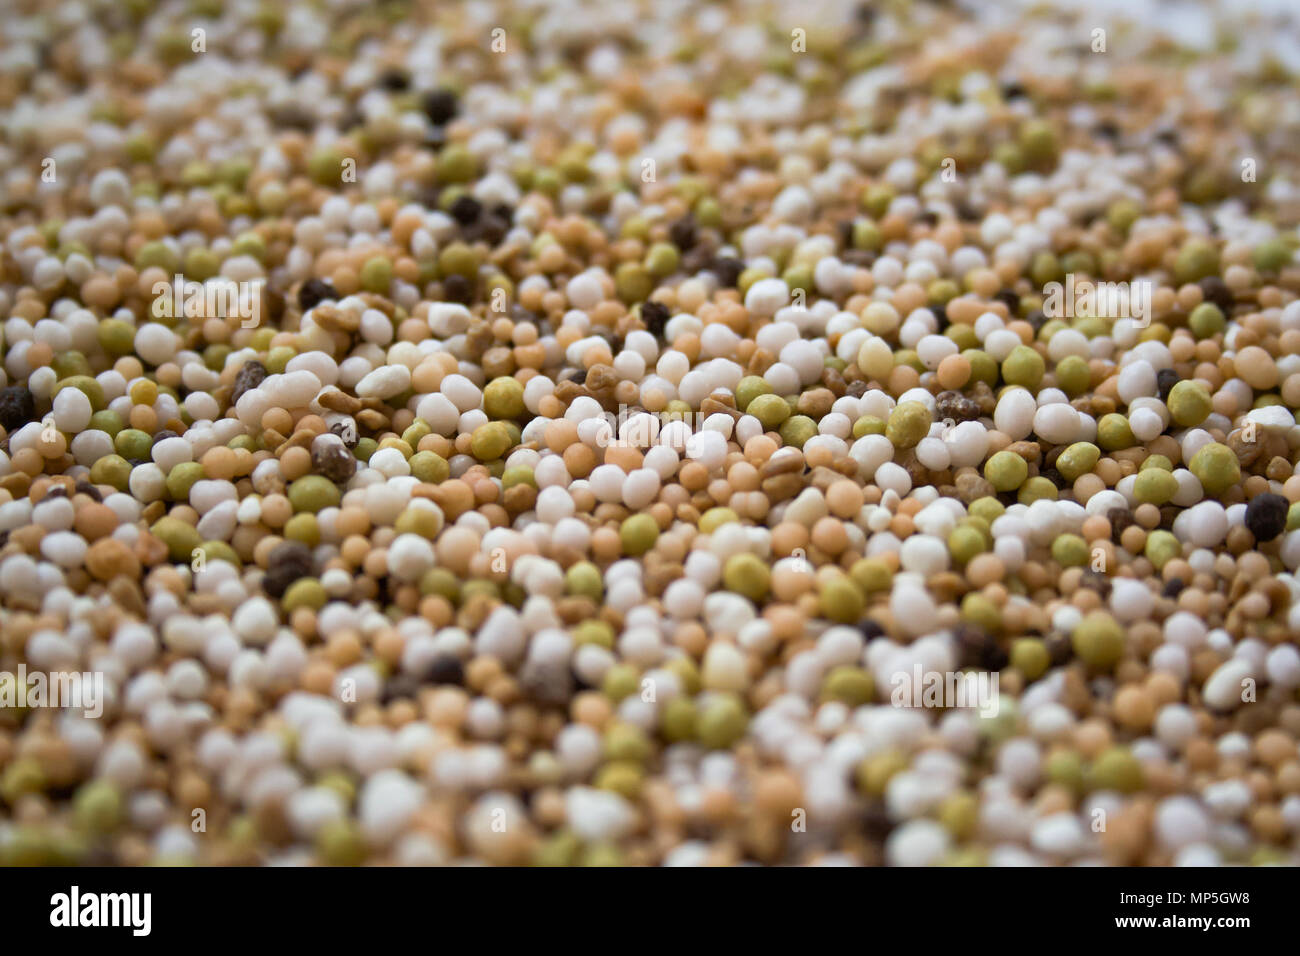 Fertilizers for agriculture texture background for design, closeup - Stock Image